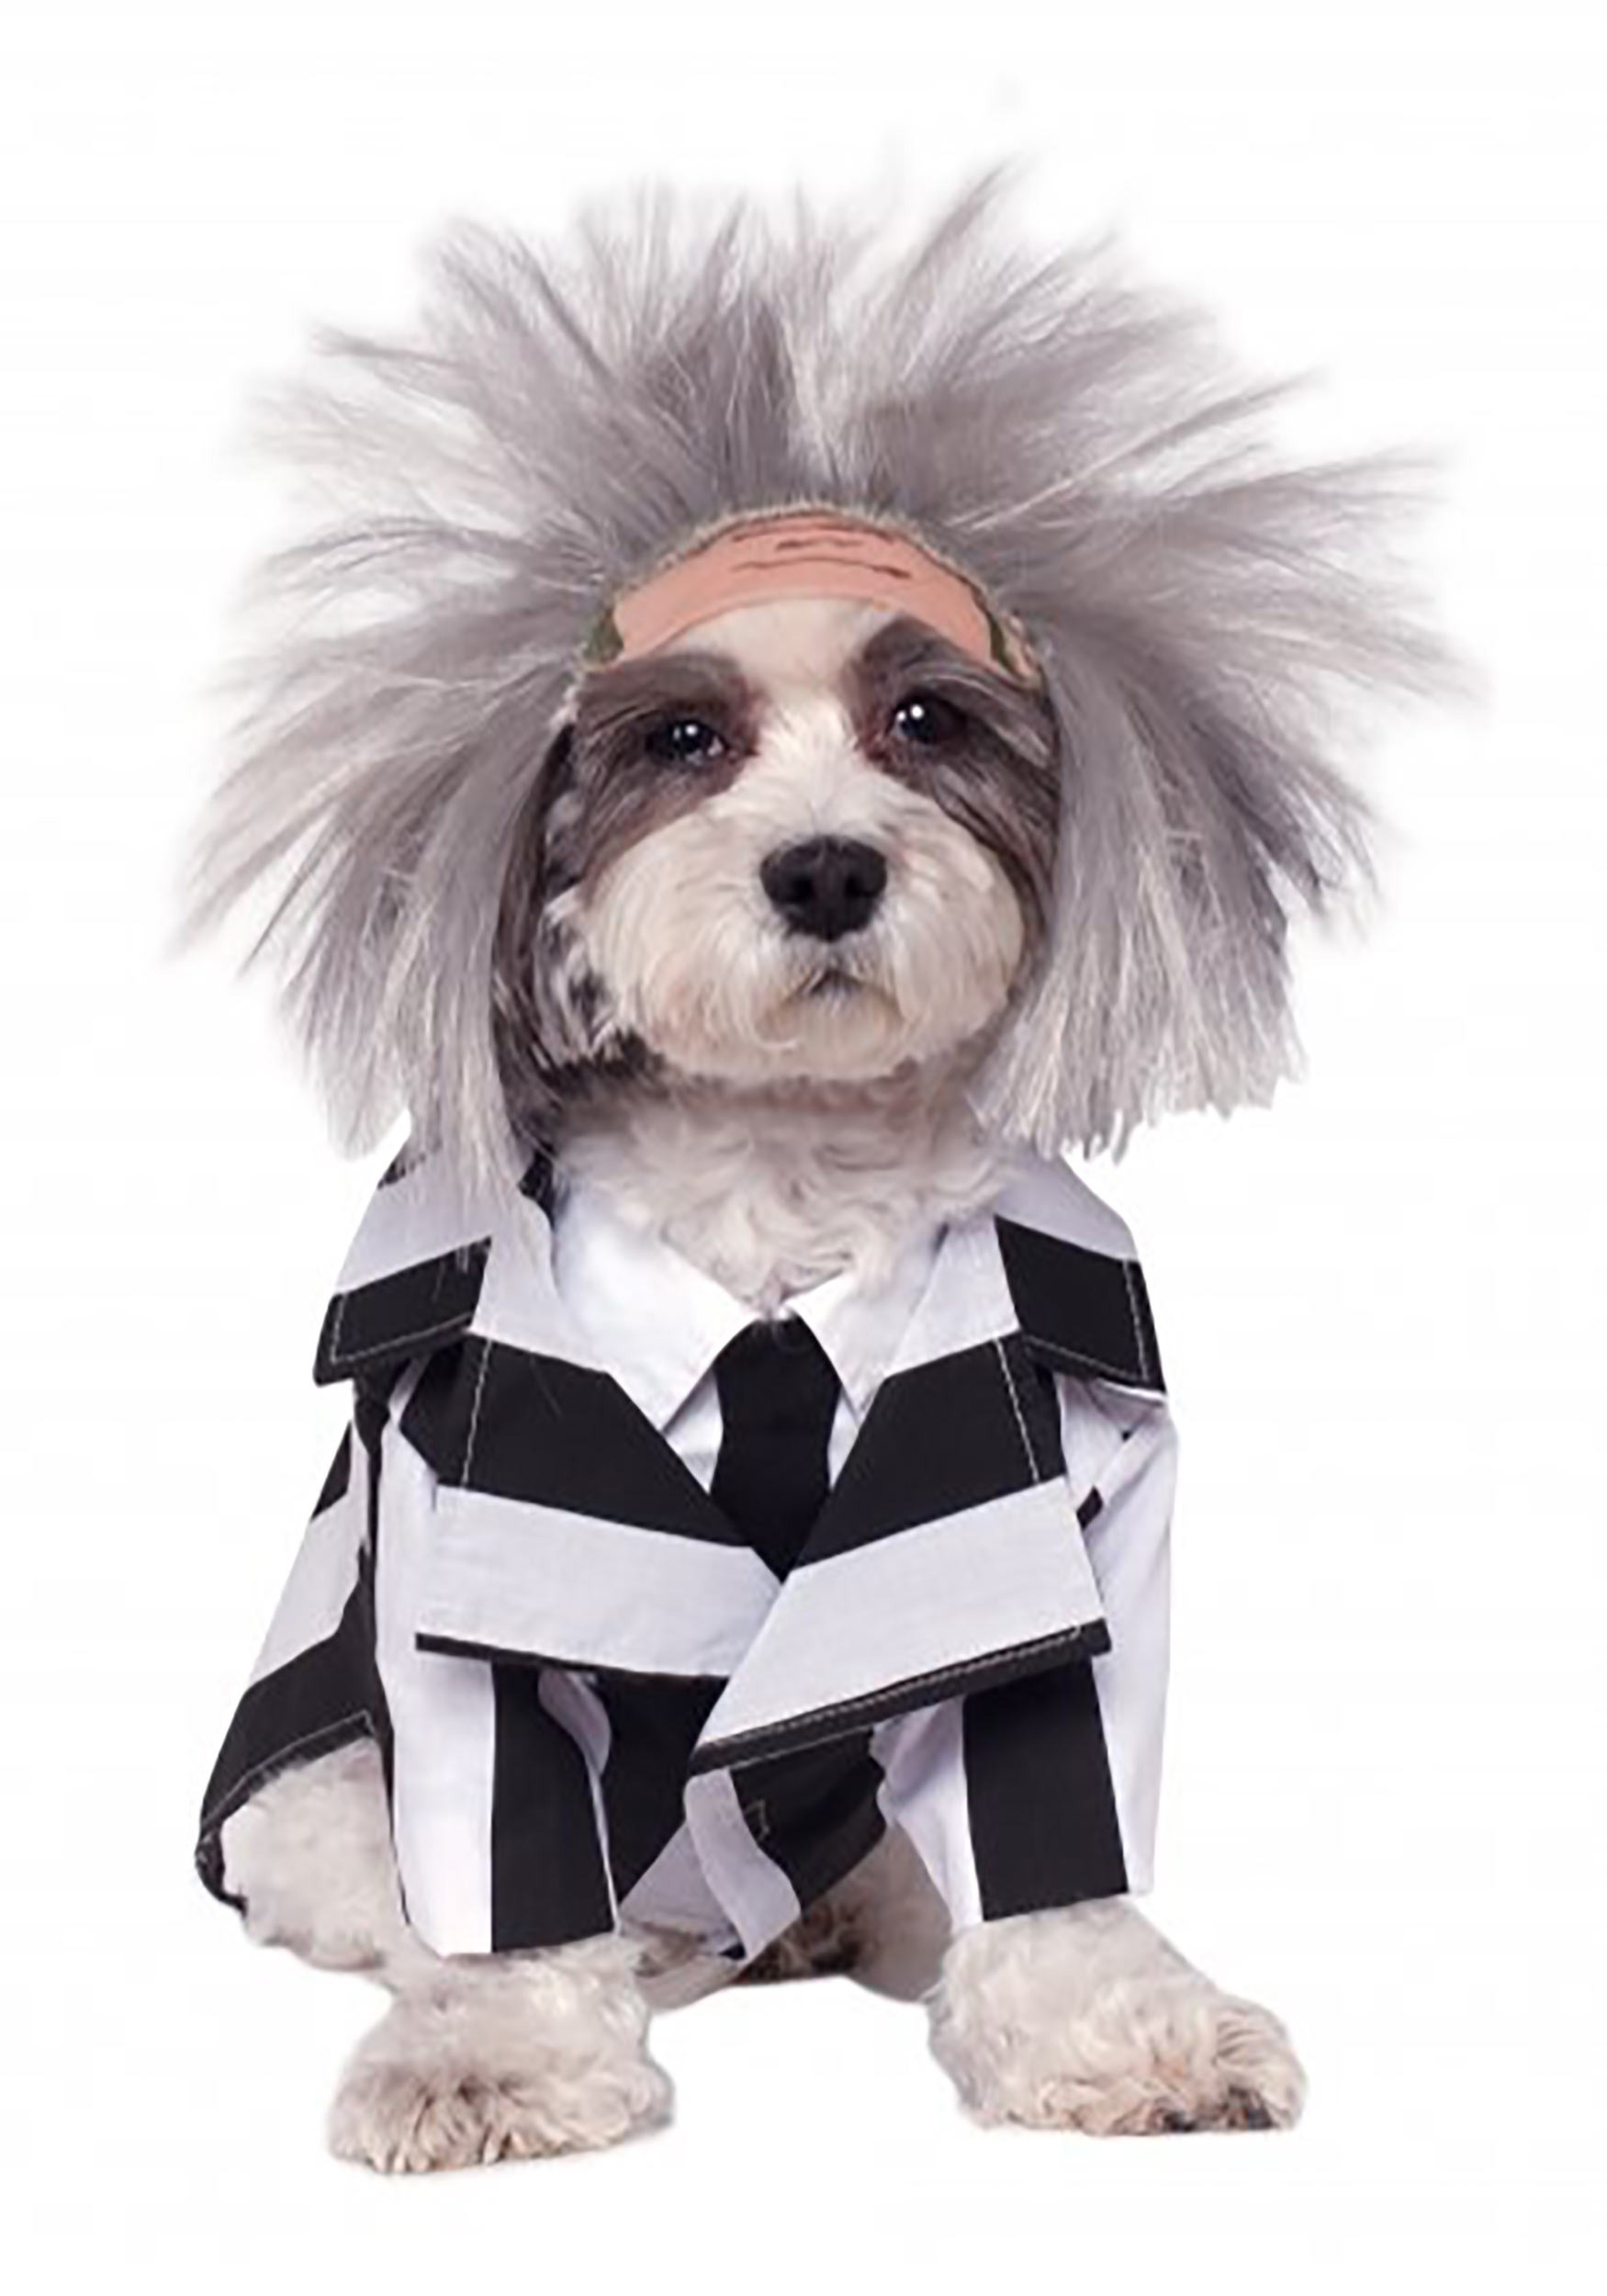 Pet Costumes - Cat & Dog Halloween Costumes - HalloweenCostumes.com